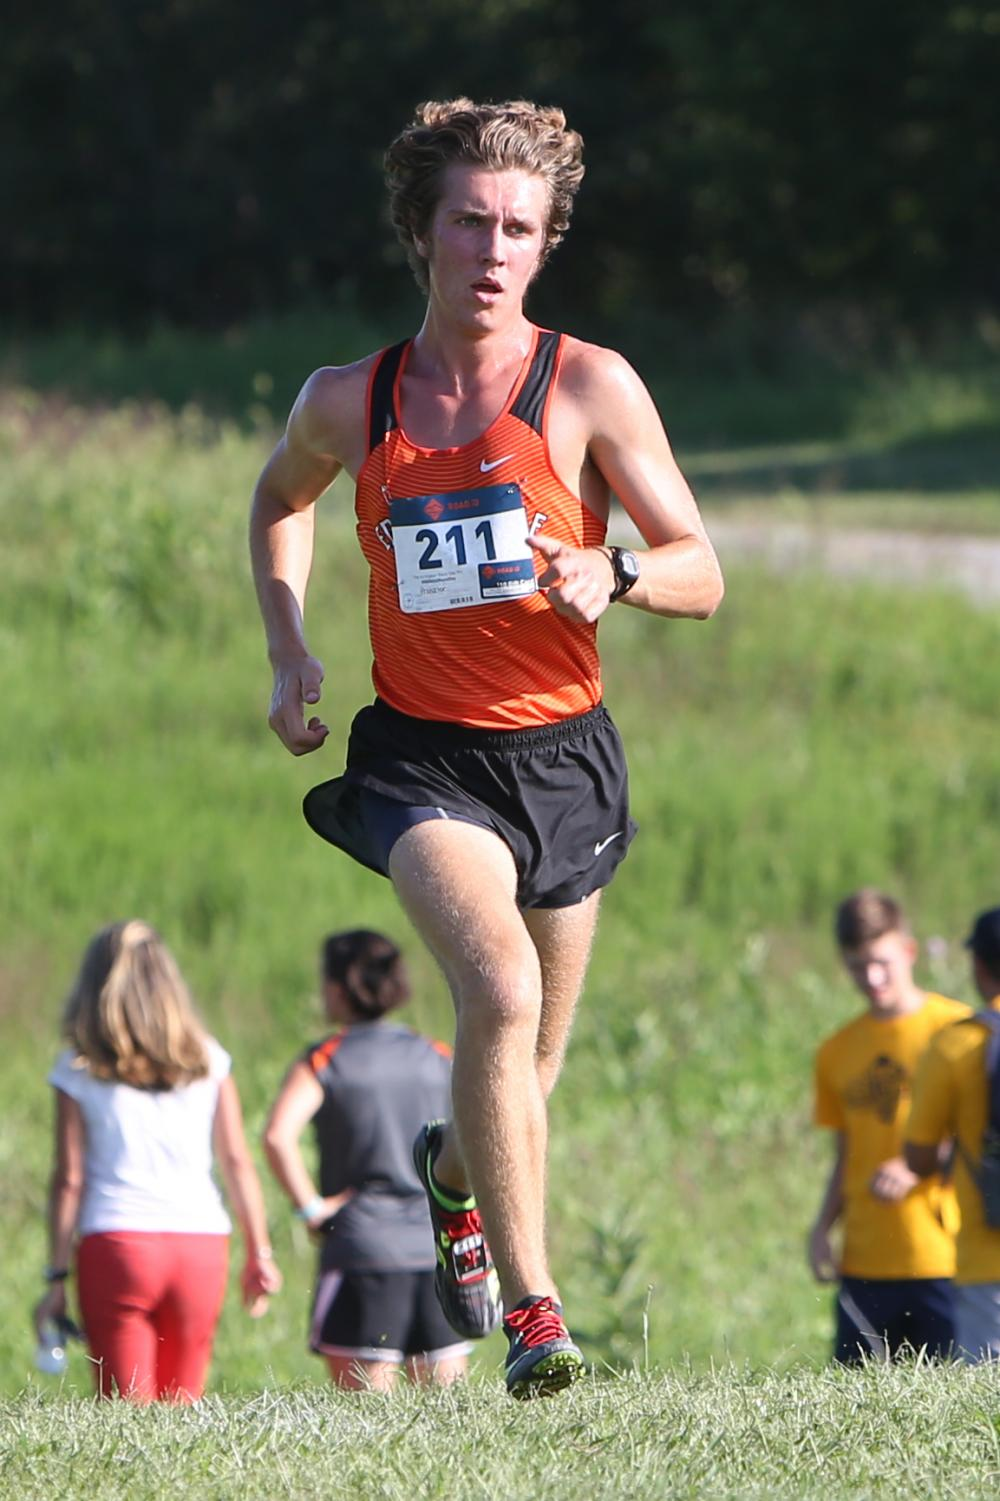 Senior Roland Prenzler leads the pack at the Edwardsville Tiger Classic at SIUE.